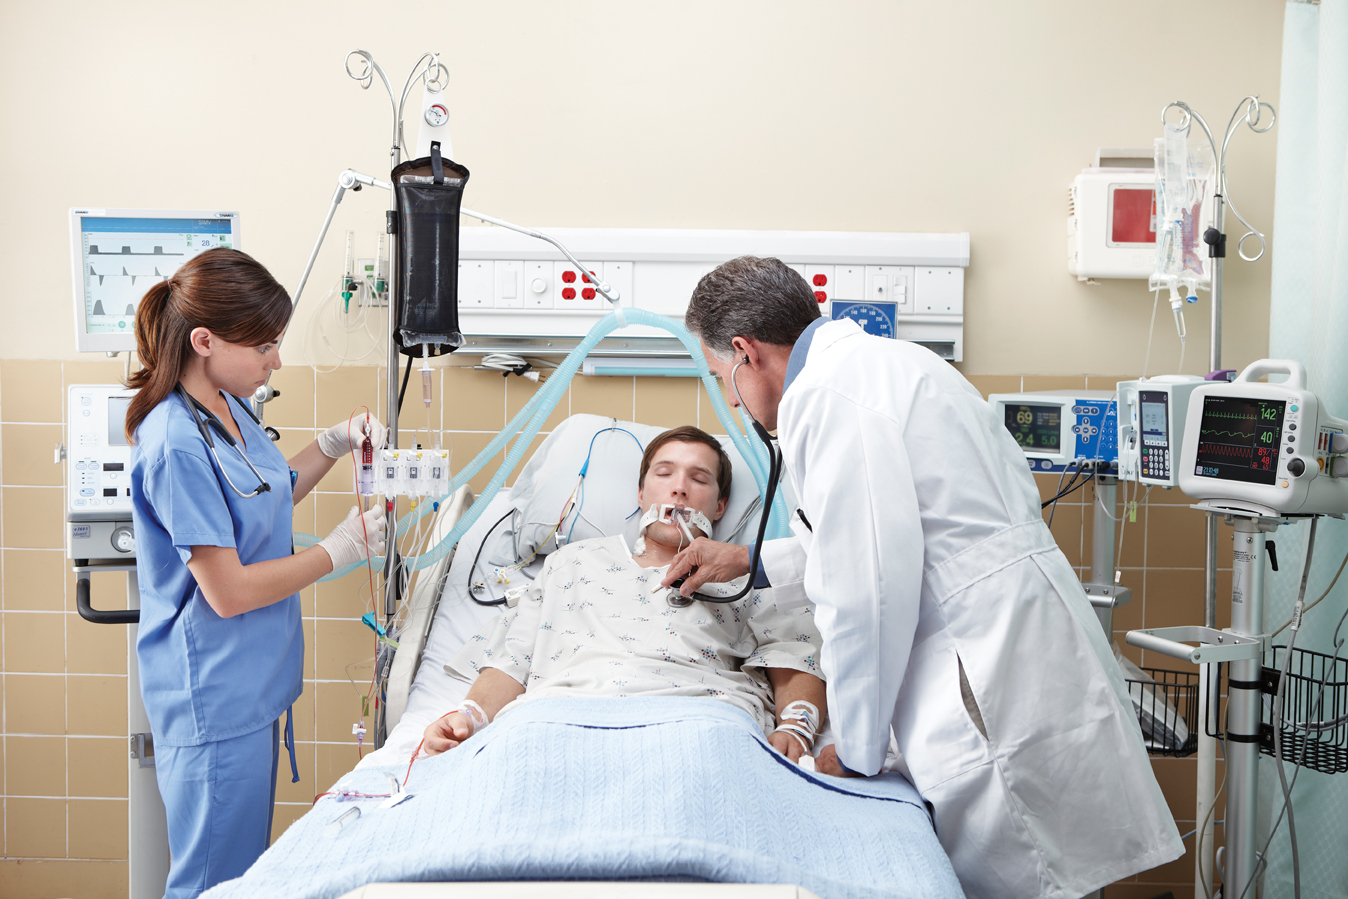 intensive care ventilator problems | mddi online